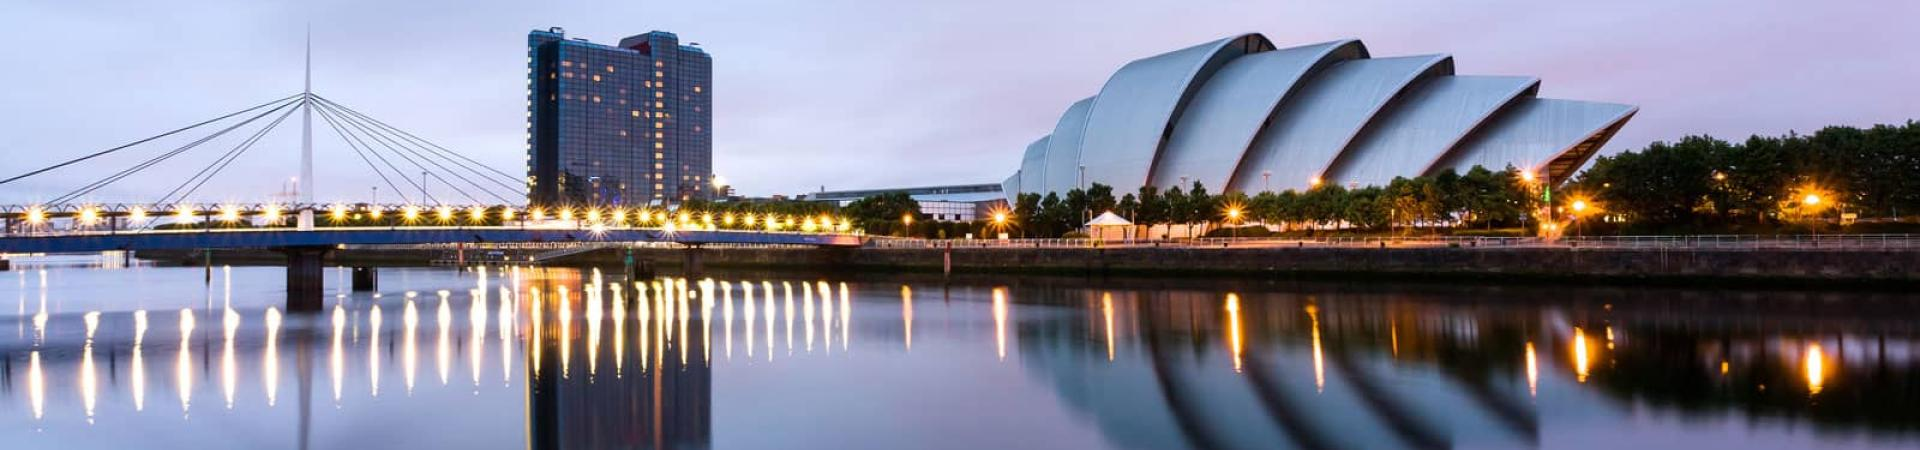 Glasgow cityscape for city banner